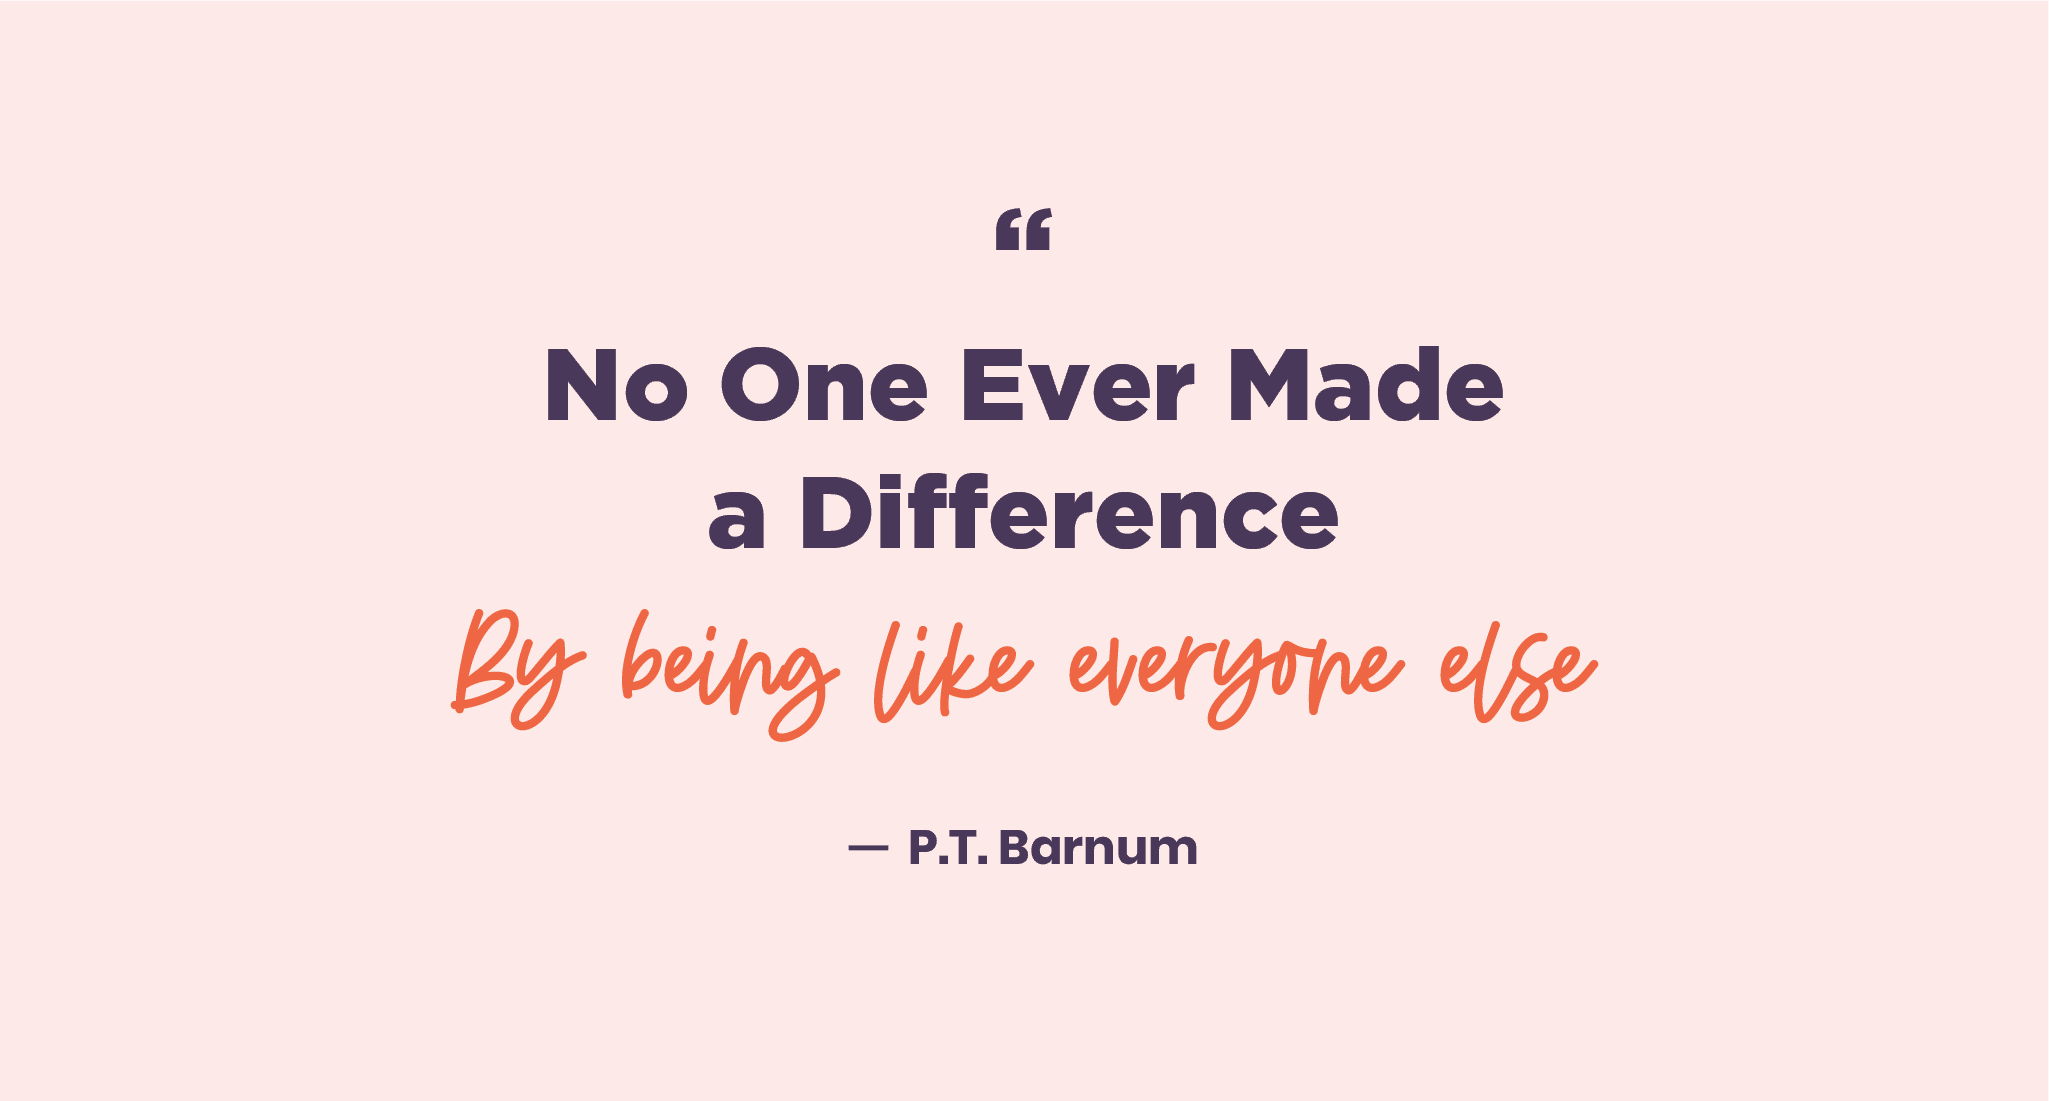 P.T. Barnum inspirational quotes on life